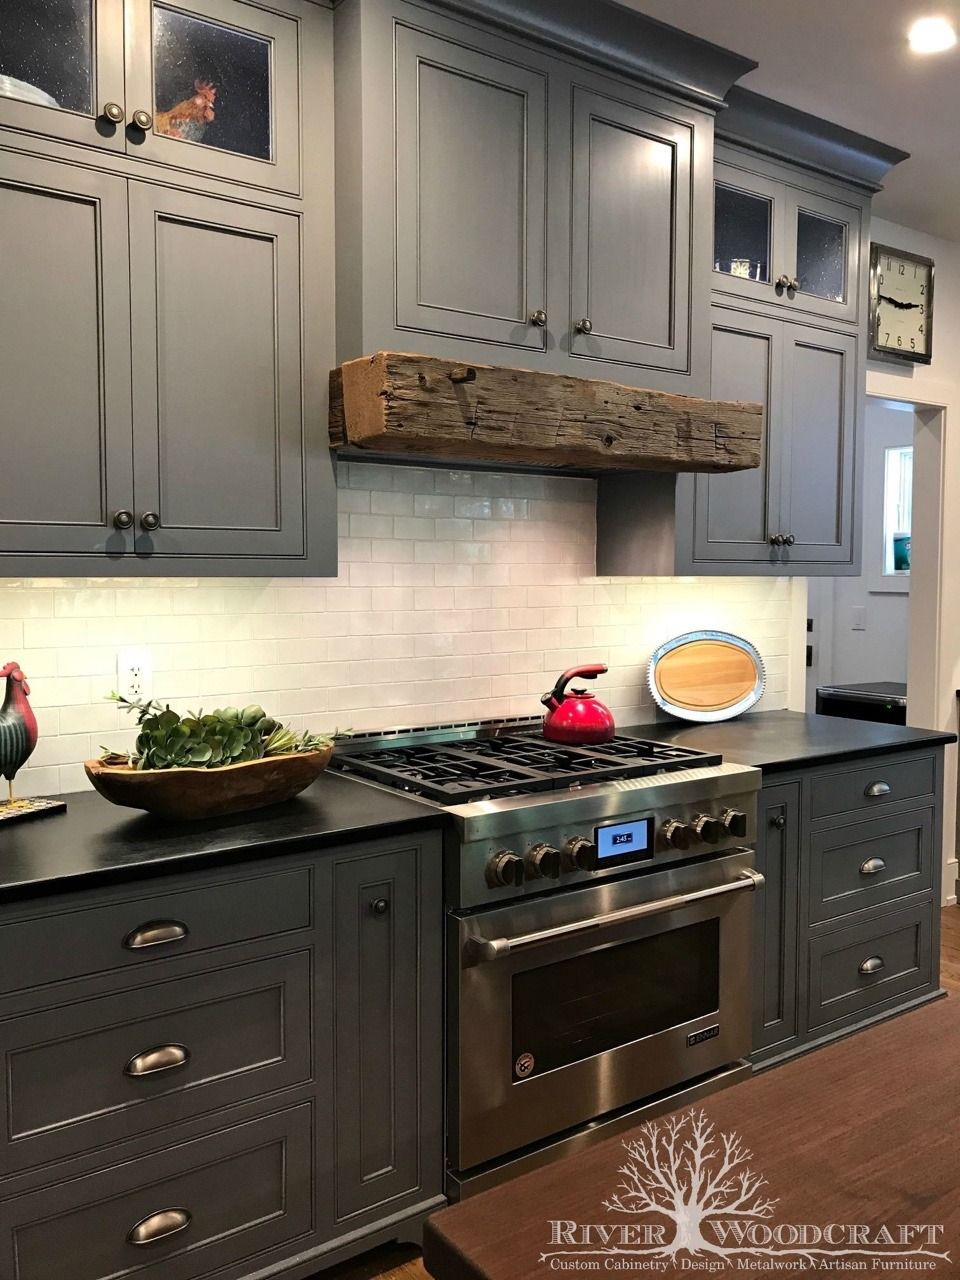 Cottage Life Stained Kitchen Cabinets Kitchen Cabinets Custom Kitchen Cabinets Design